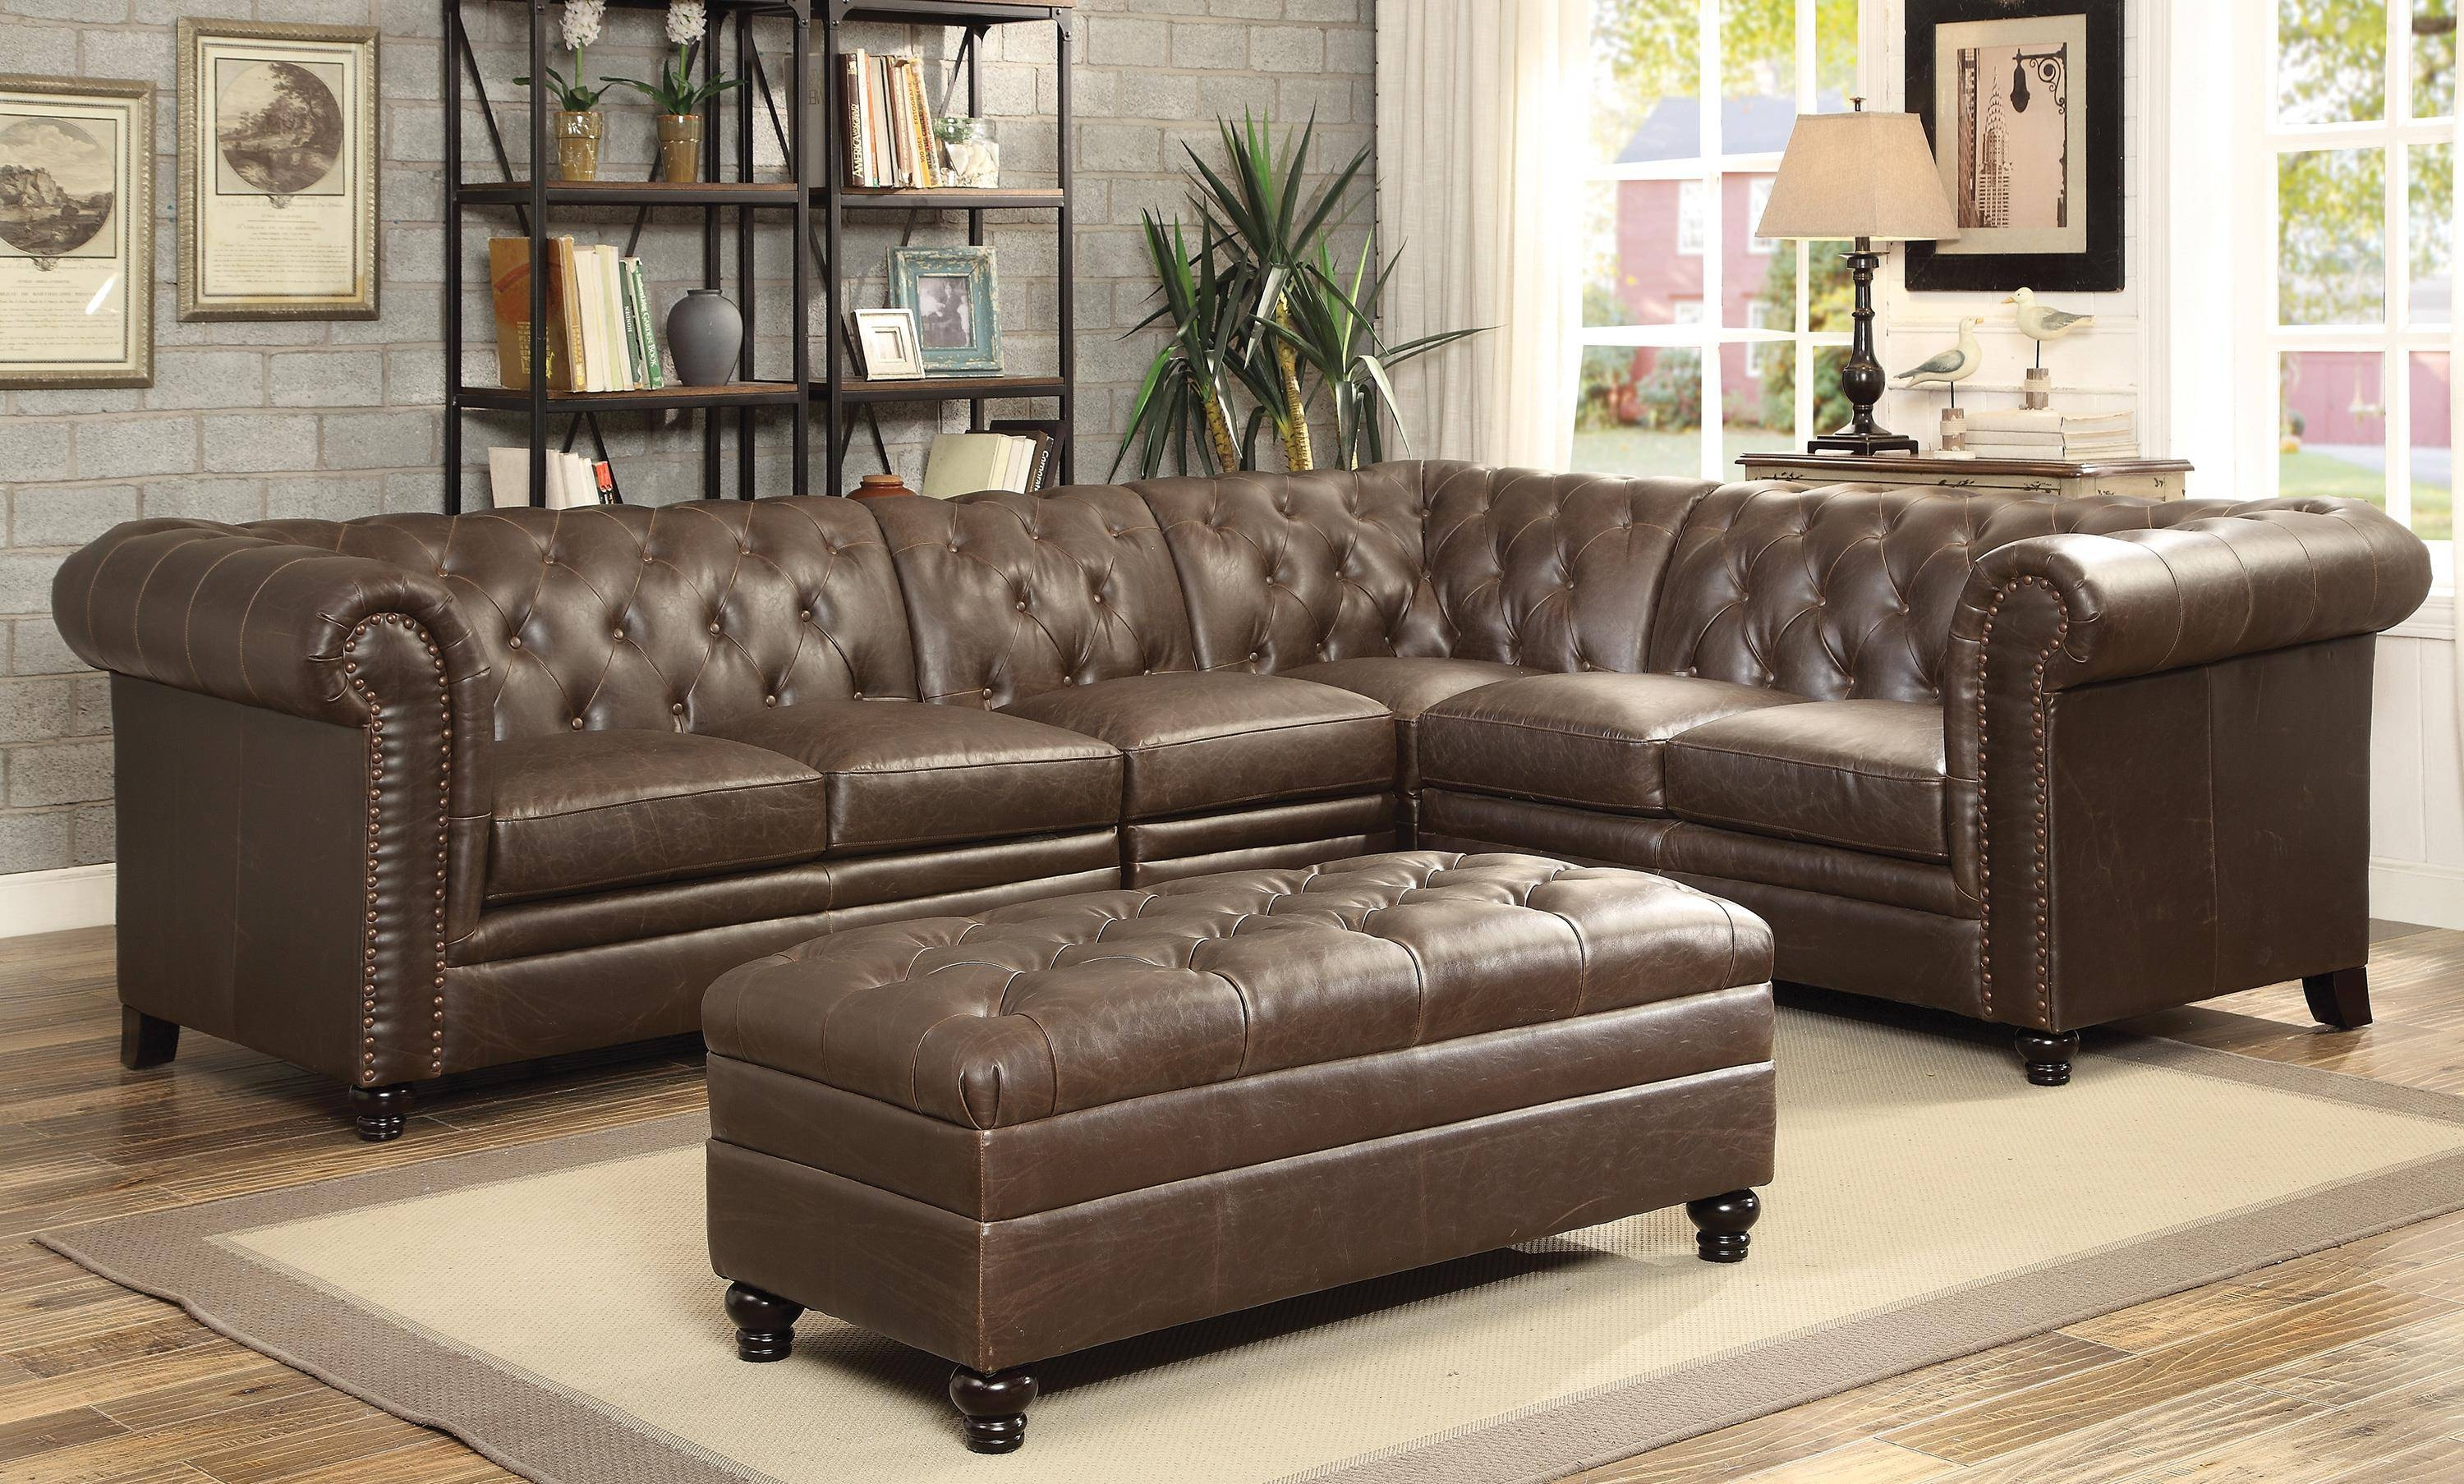 Coaster Roy Button-Tufted Sectional Sofa - Coaster Fine Furniture pertaining to Traditional Sectional Sofas (Image 5 of 25)